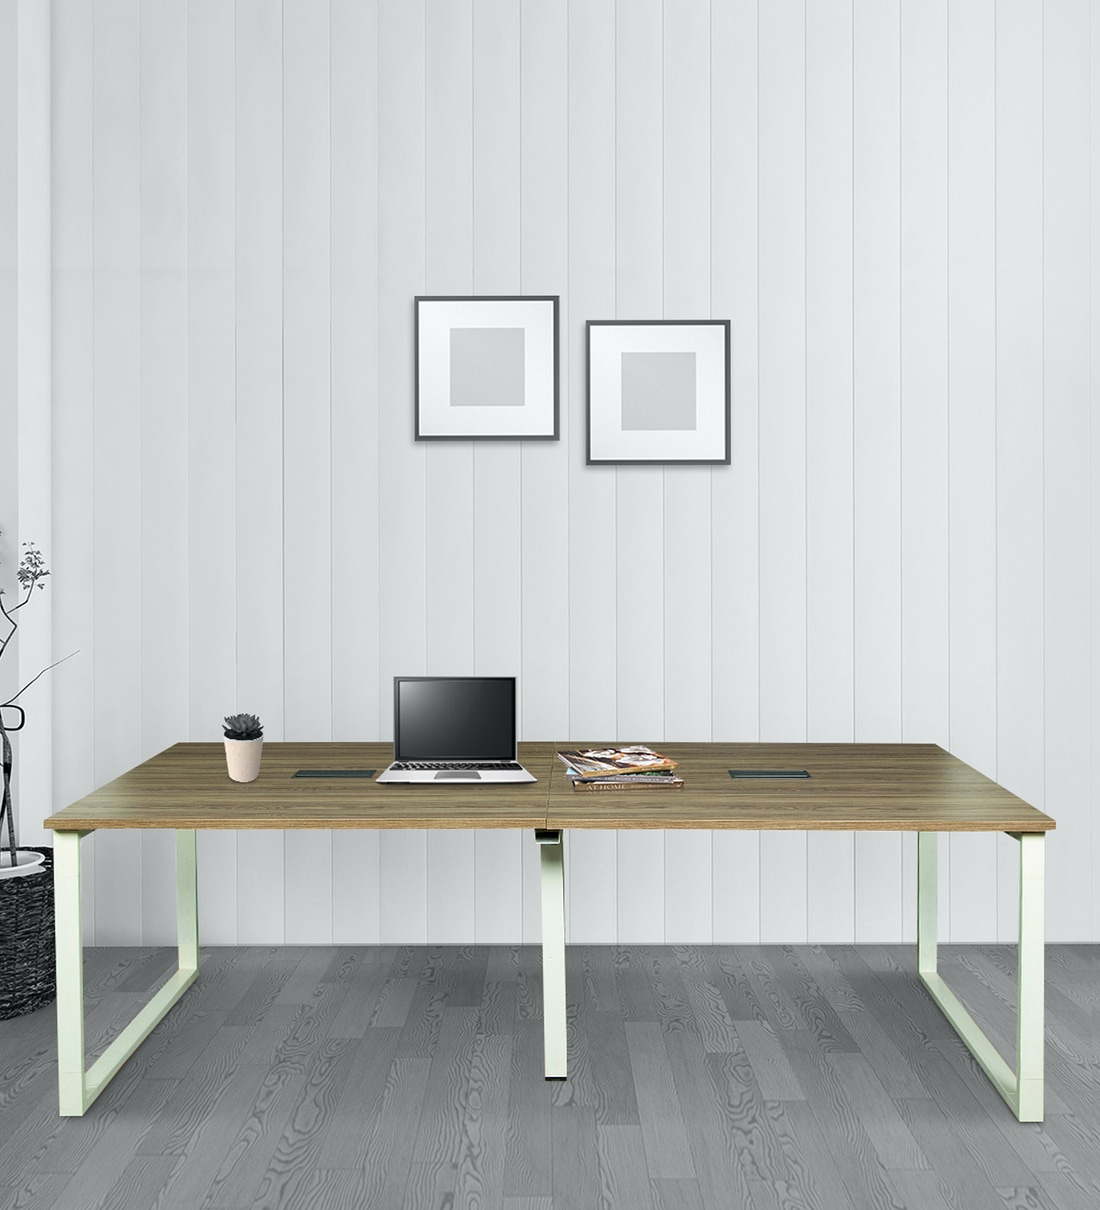 Buy Mig Conference Table In White Green Frame America Oak Finish By Parin Online Work Stations Tables Furniture Pepperfry Product